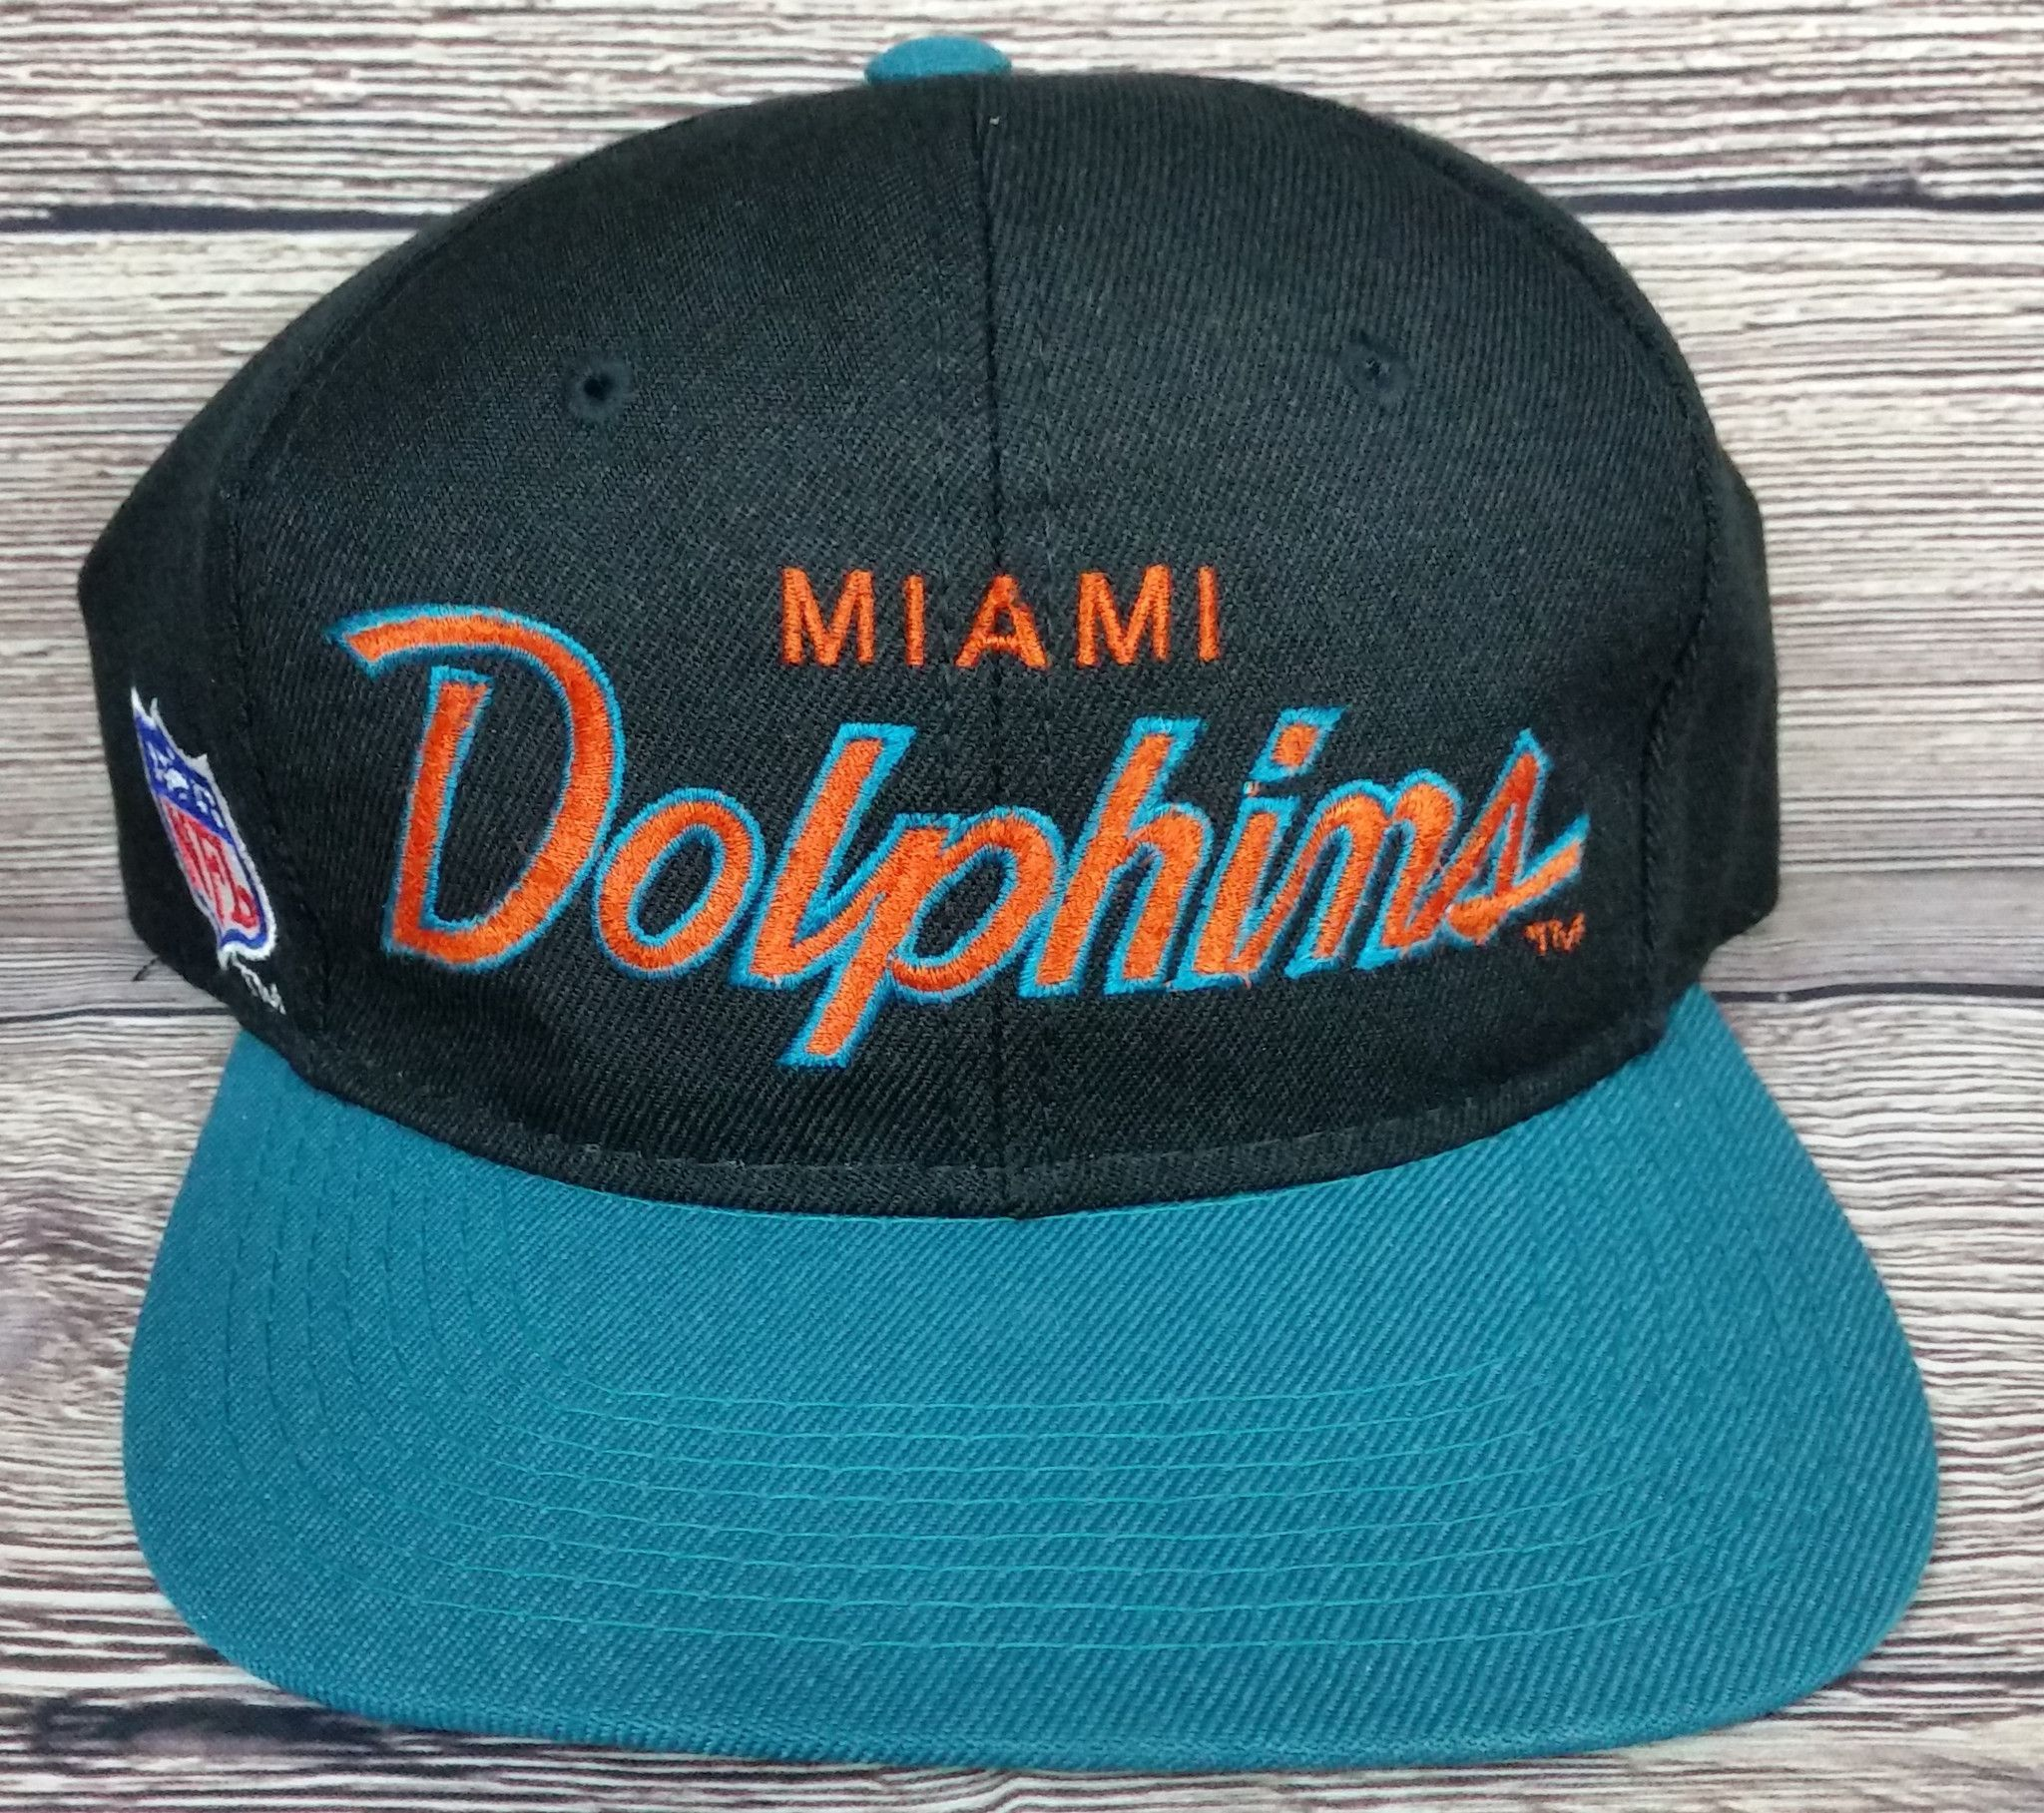 439fa226 Miami Dolphins Vintage Snapback Sports Specialties Script Hat NFL ...